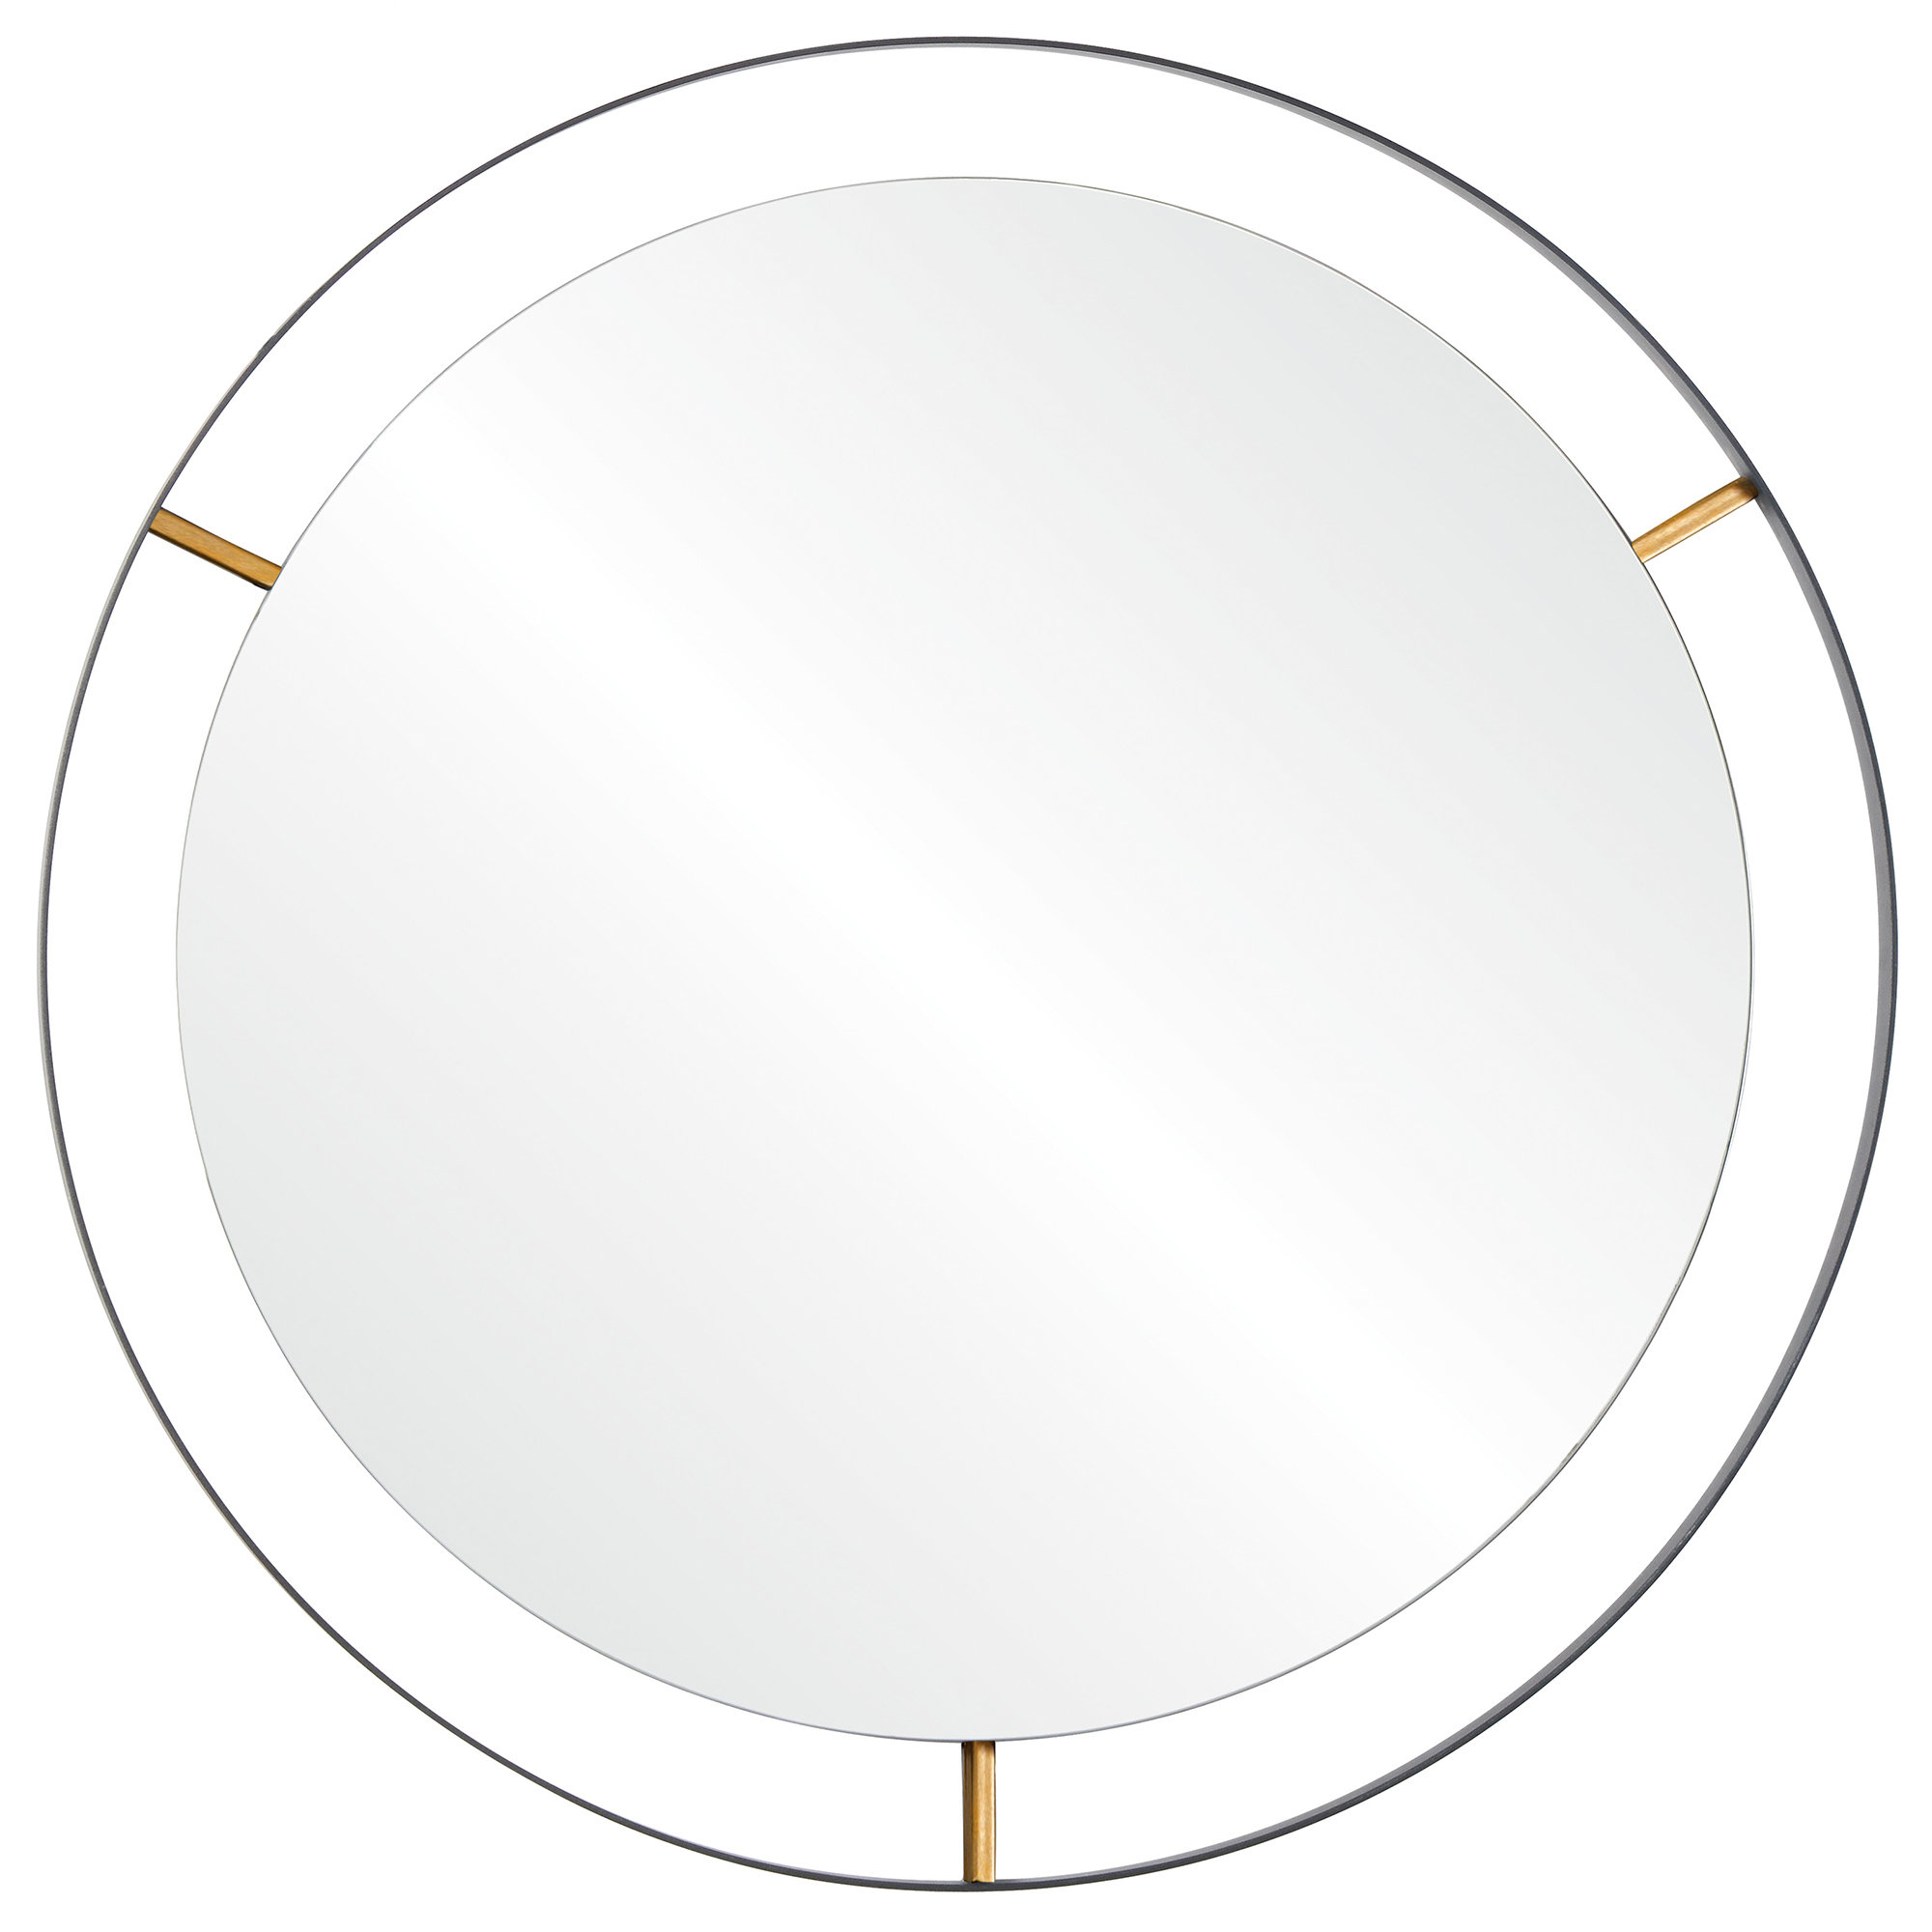 Famous Wolfenbarger Industrial Accent Mirror With Gaunts Earthcott Wall Mirrors (View 11 of 20)